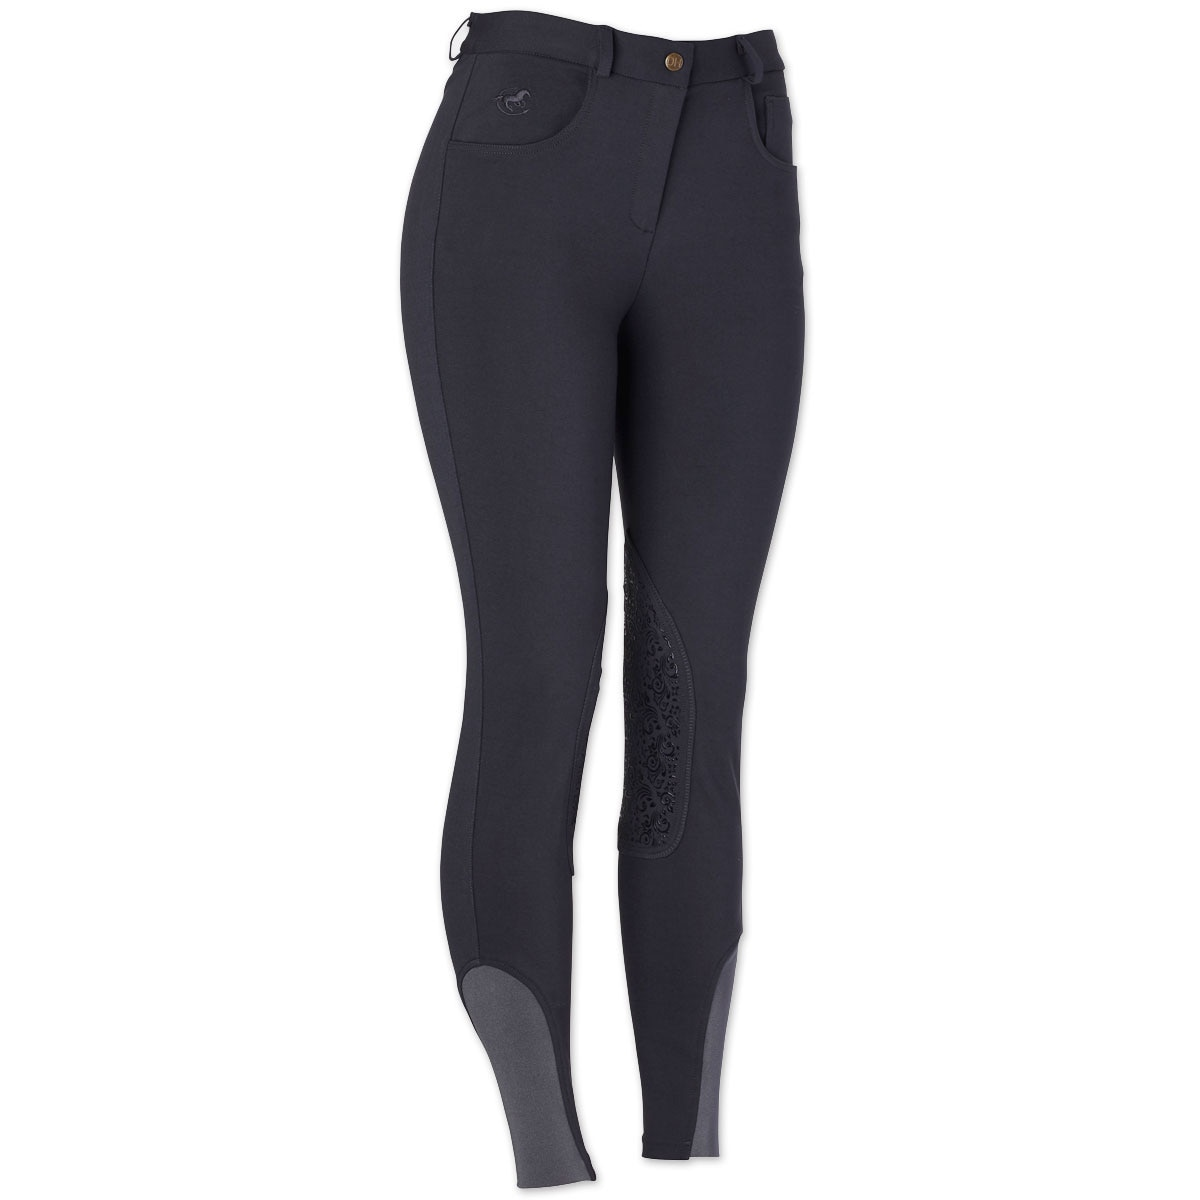 Piper Knit Breeches by SmartPak - Mid Rise Knee Patch